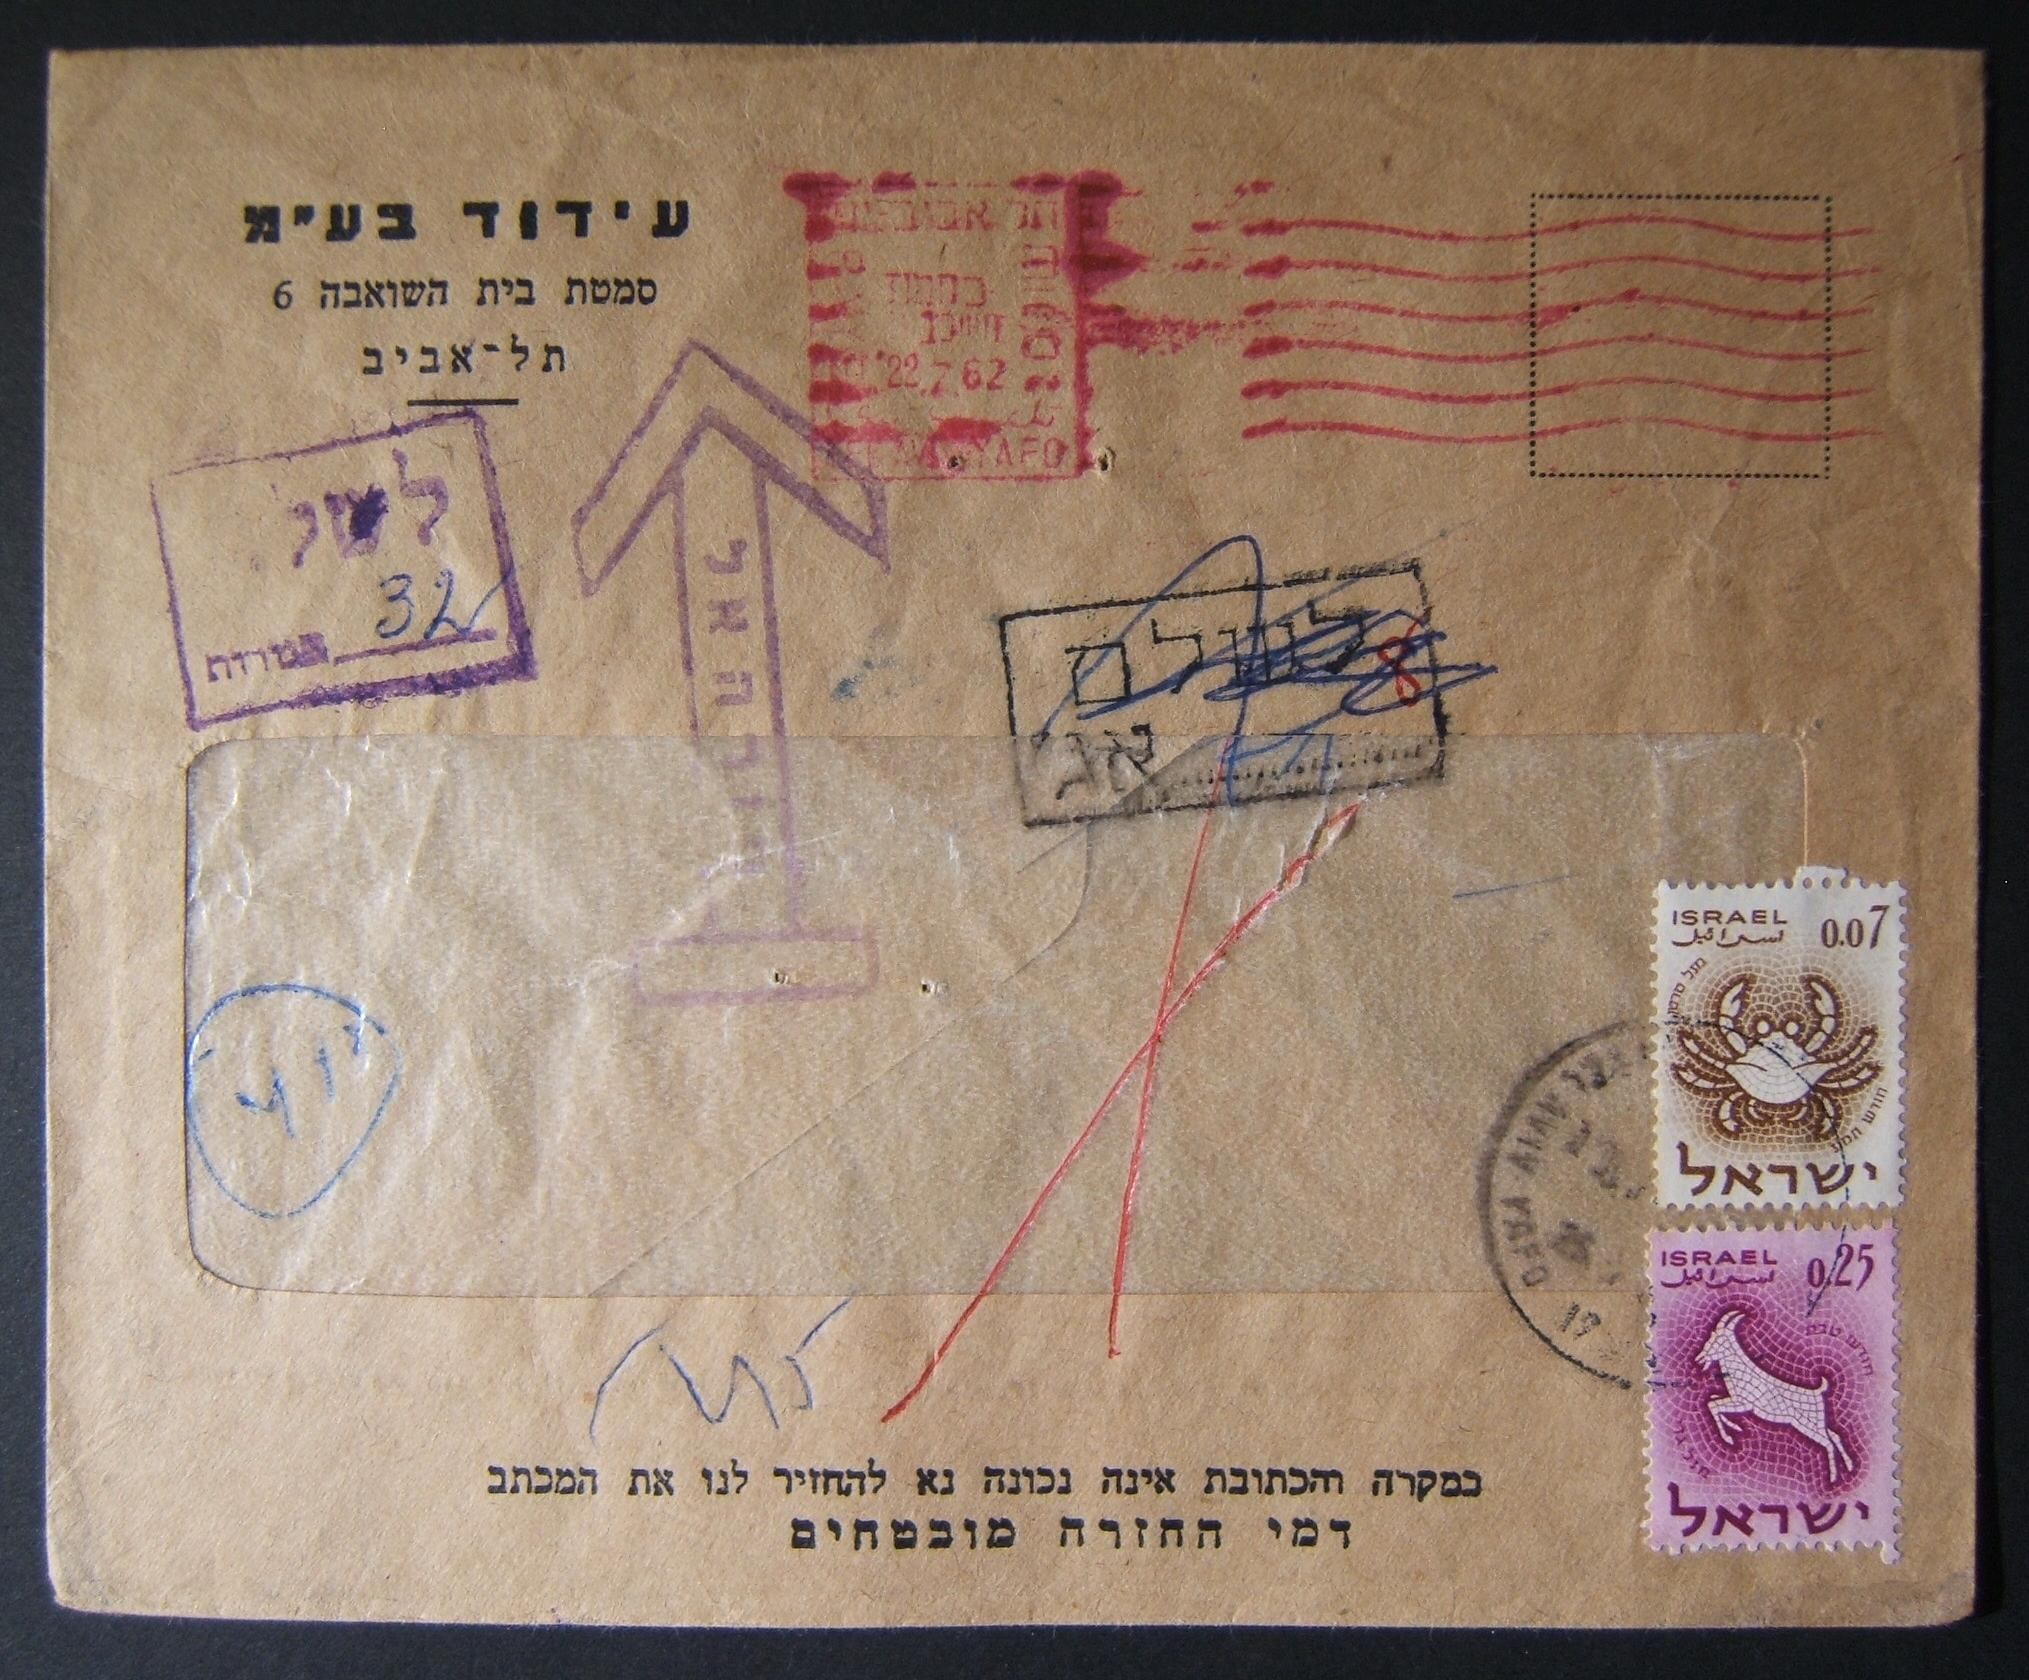 1962 domestic 'top of the pile' taxed franking: 22-7-62 printed matter commercial cover ex TLV branch of Idud Ltd. to RAMAT GAN franked by machine prepayment at the DO-11 period 8